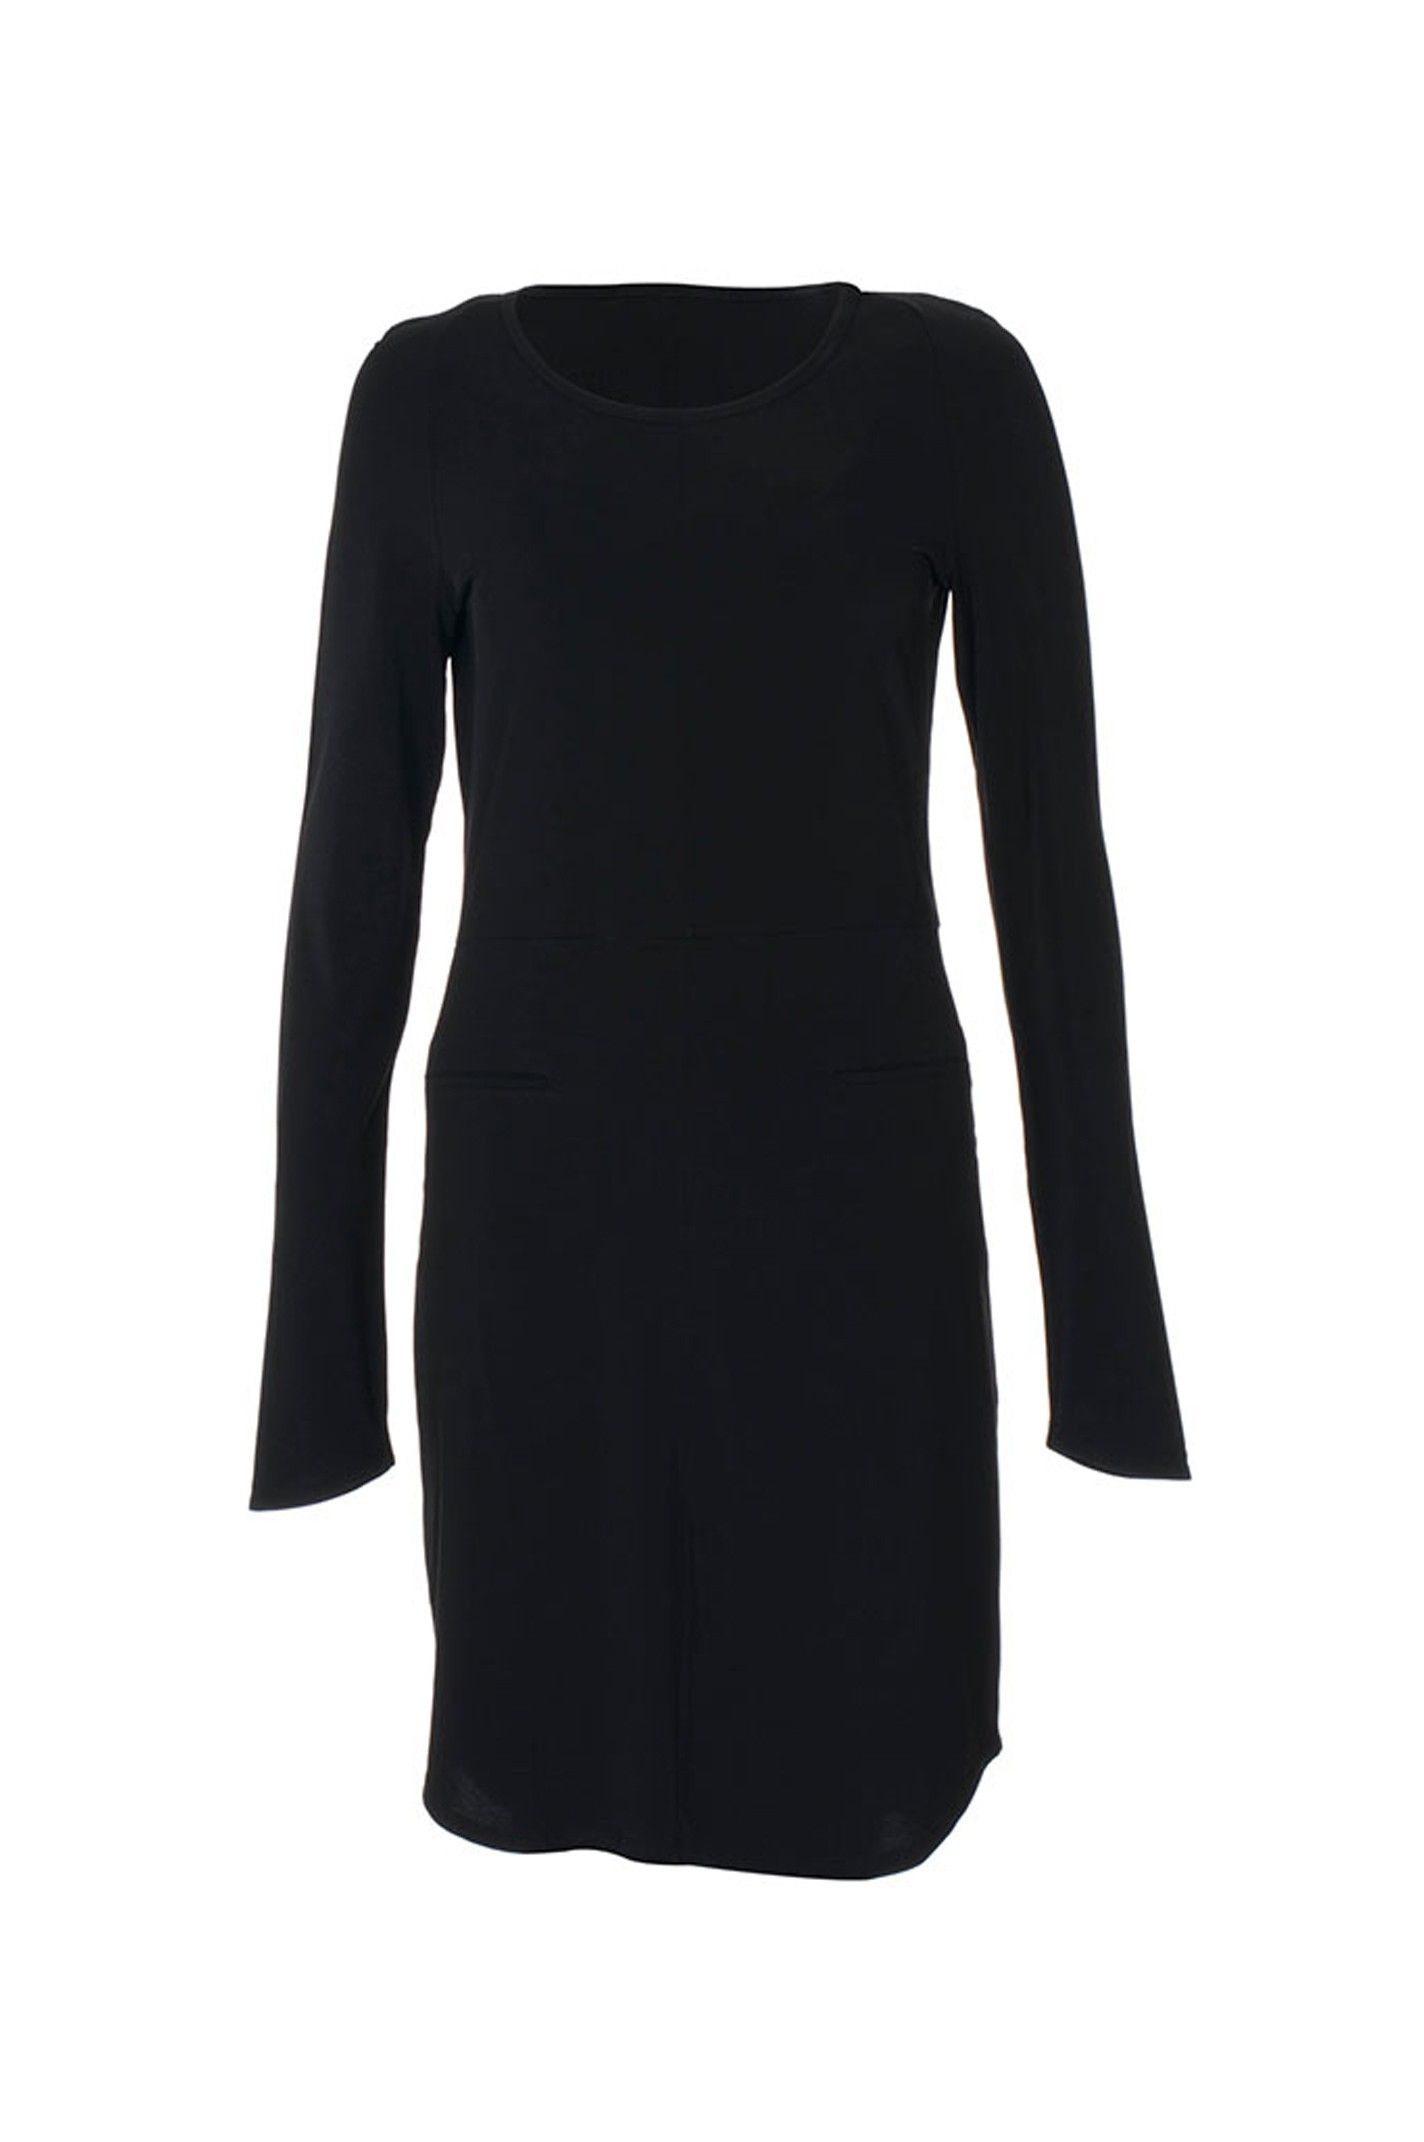 See by Chloé Lycra Black Dress, £110.09 at Fashionista Outlet - http://www.fashionista-outlet.com/see-by-chlo-lycra-black-dress.html